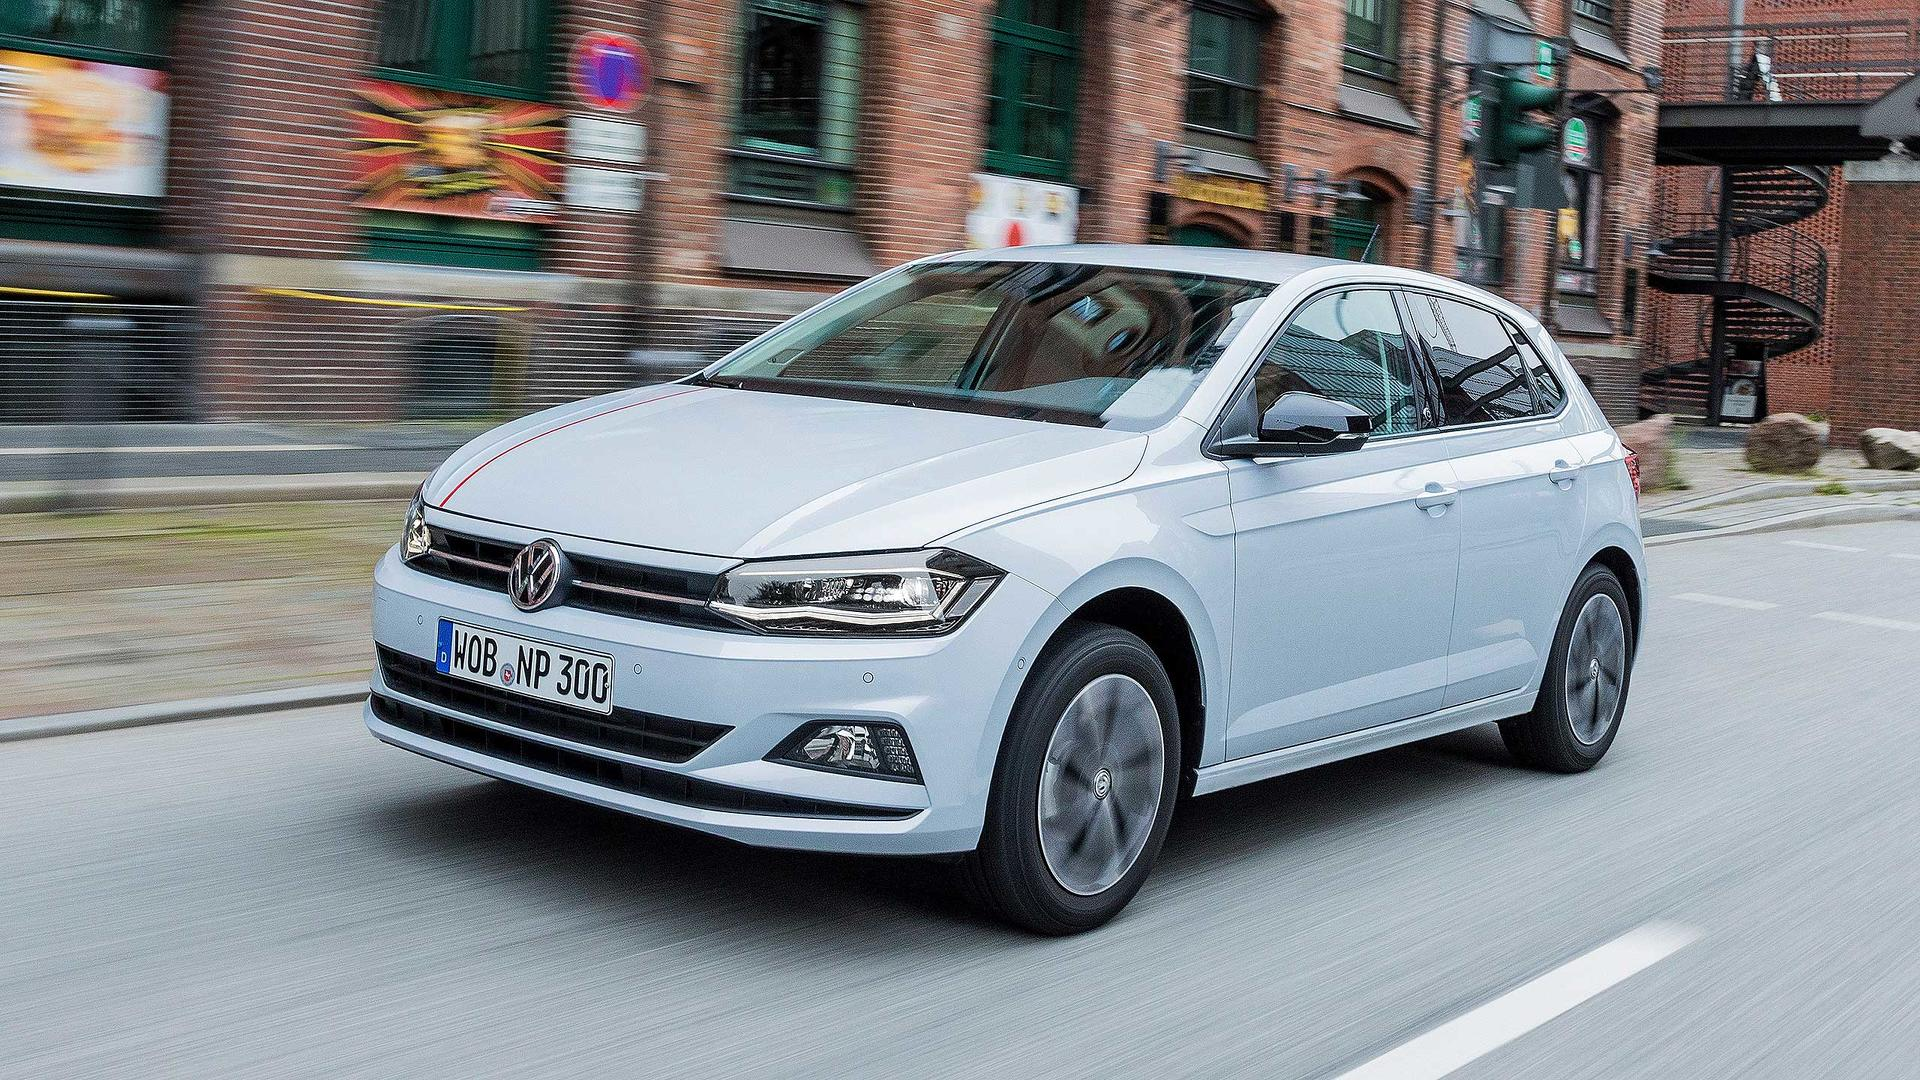 Volkswagen Polo News And Reviews Motor1 Com Uk